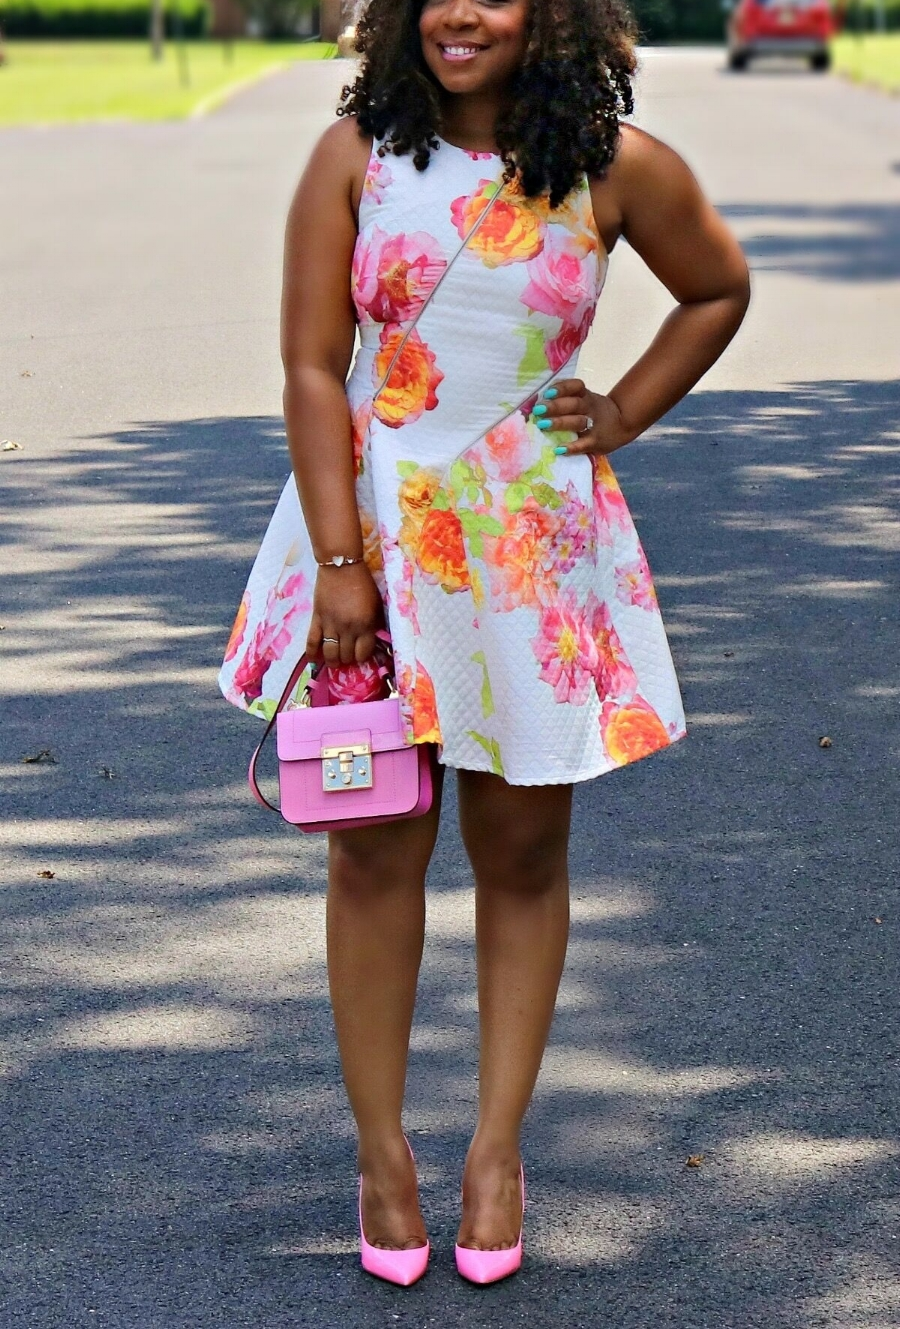 Style & Poise: Neon Florals